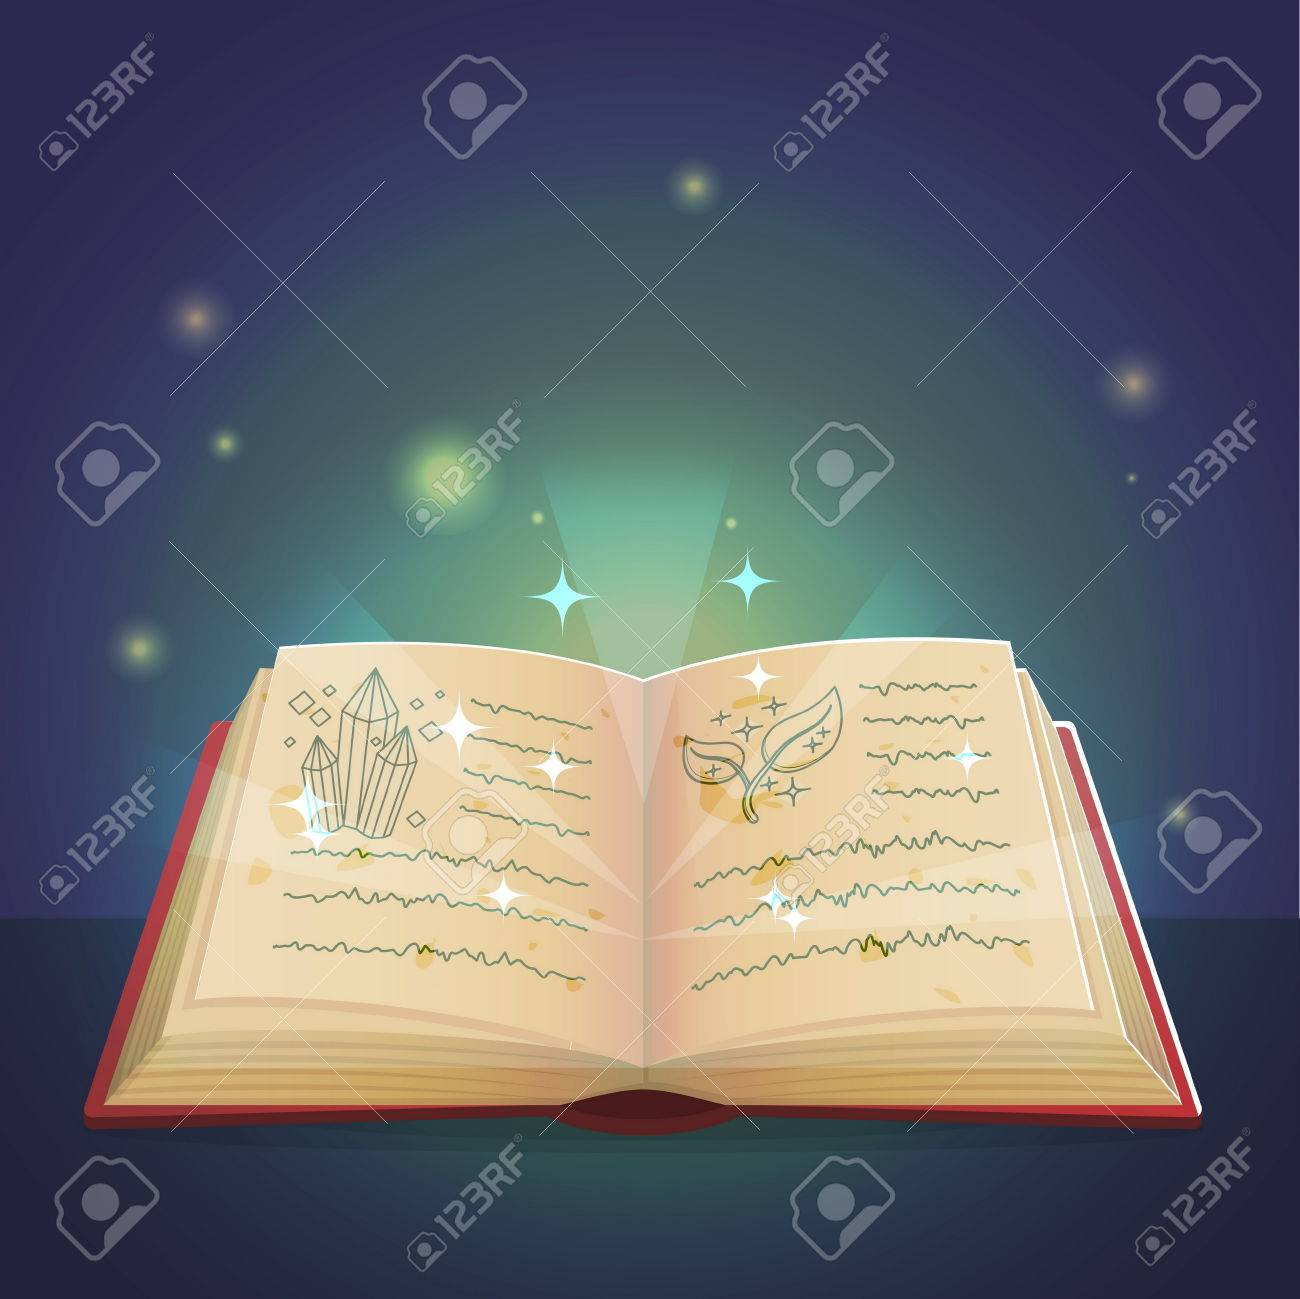 Ancient magic book with alchemy recipes and mystic spells and